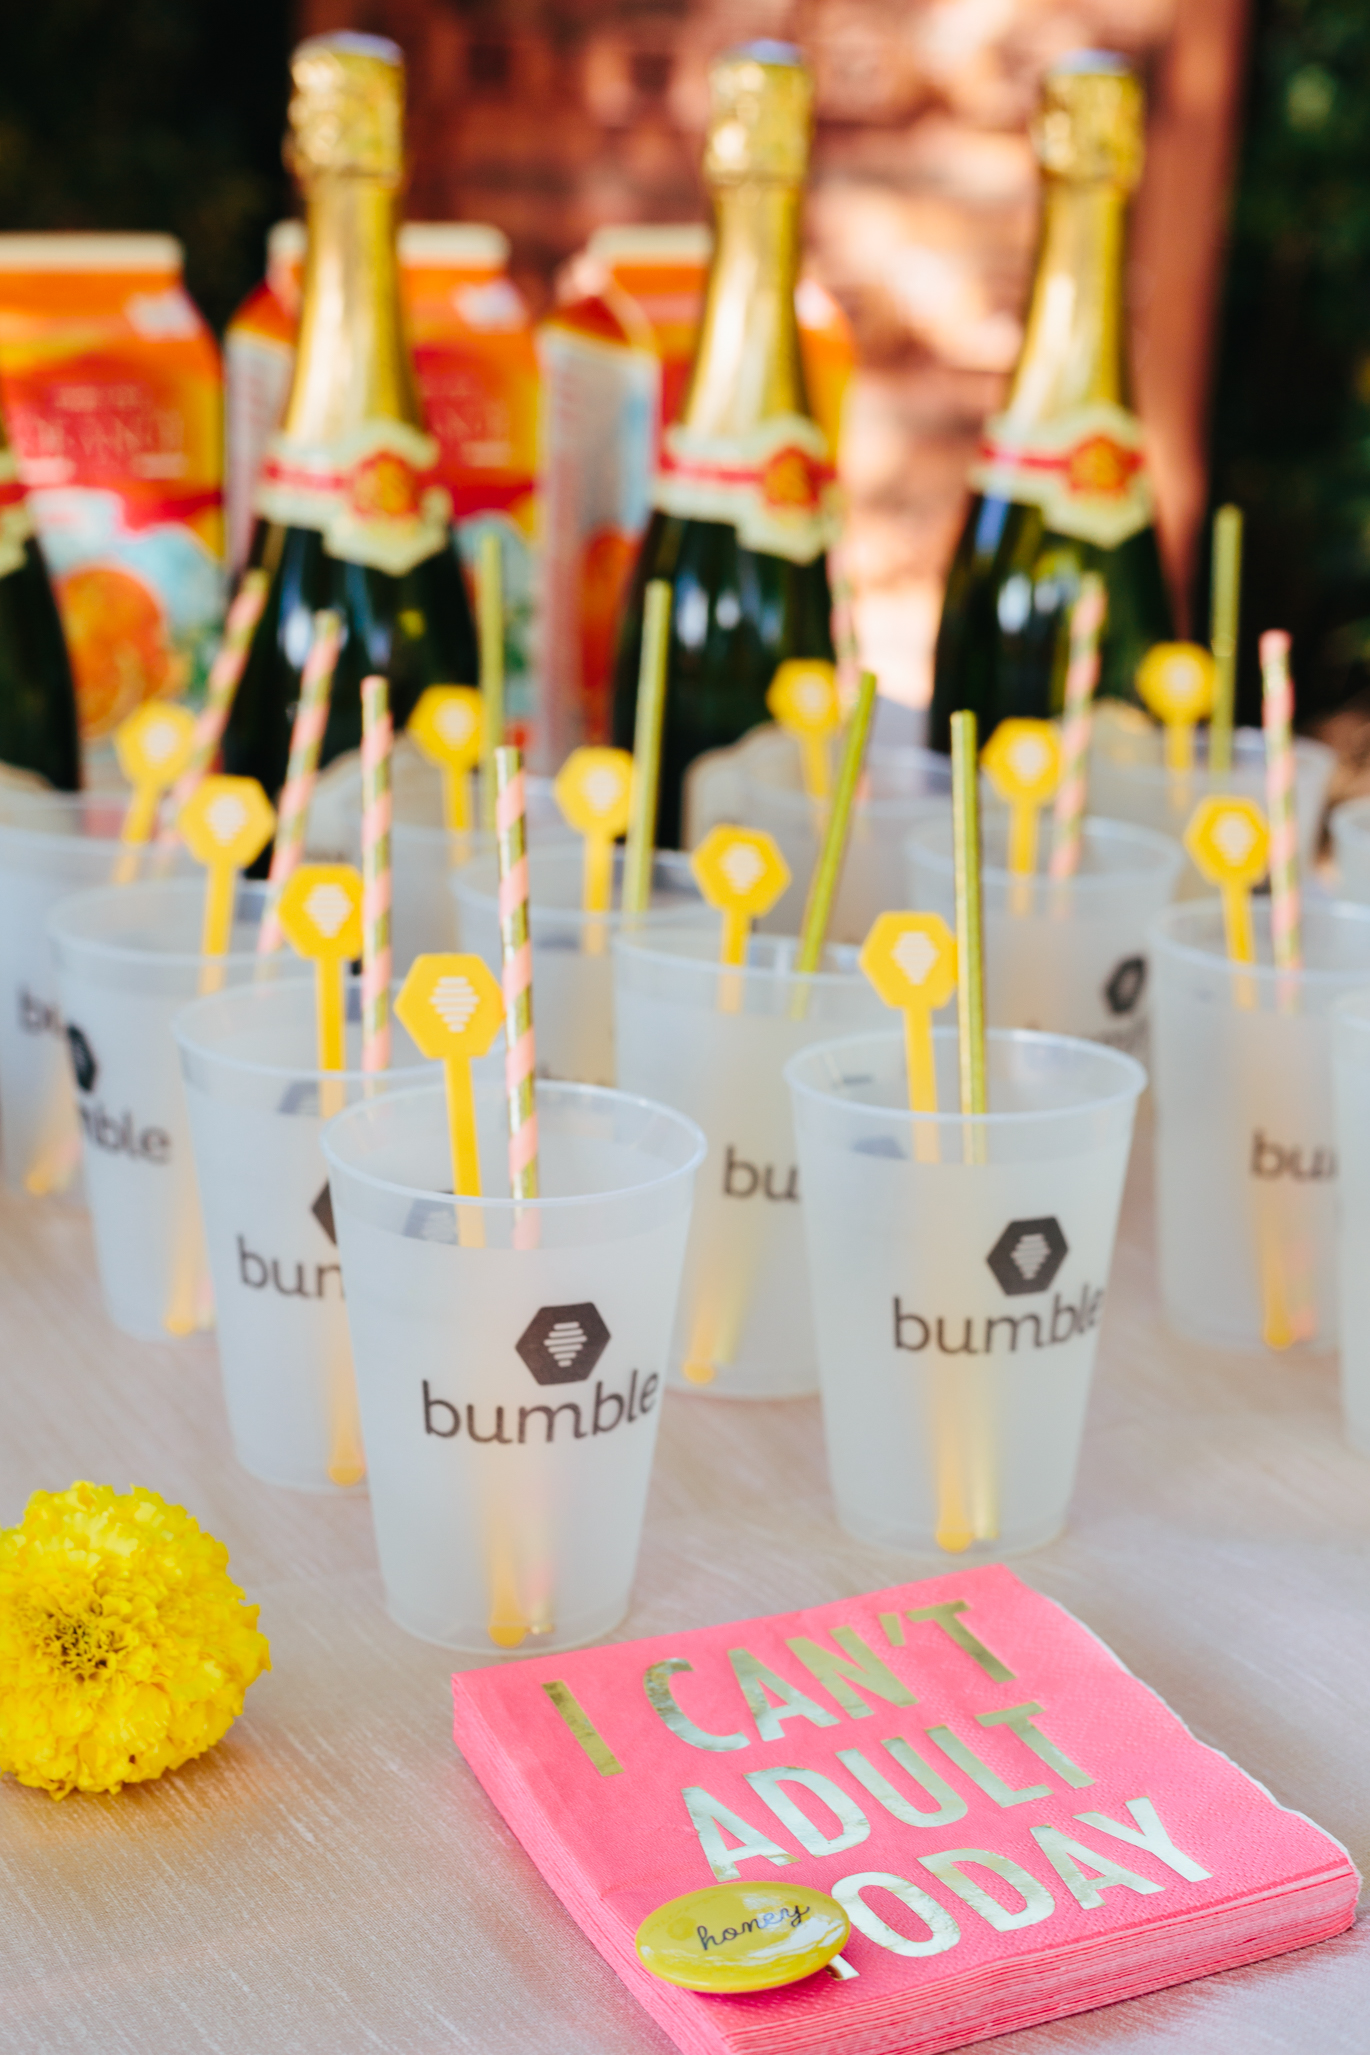 Bumble event